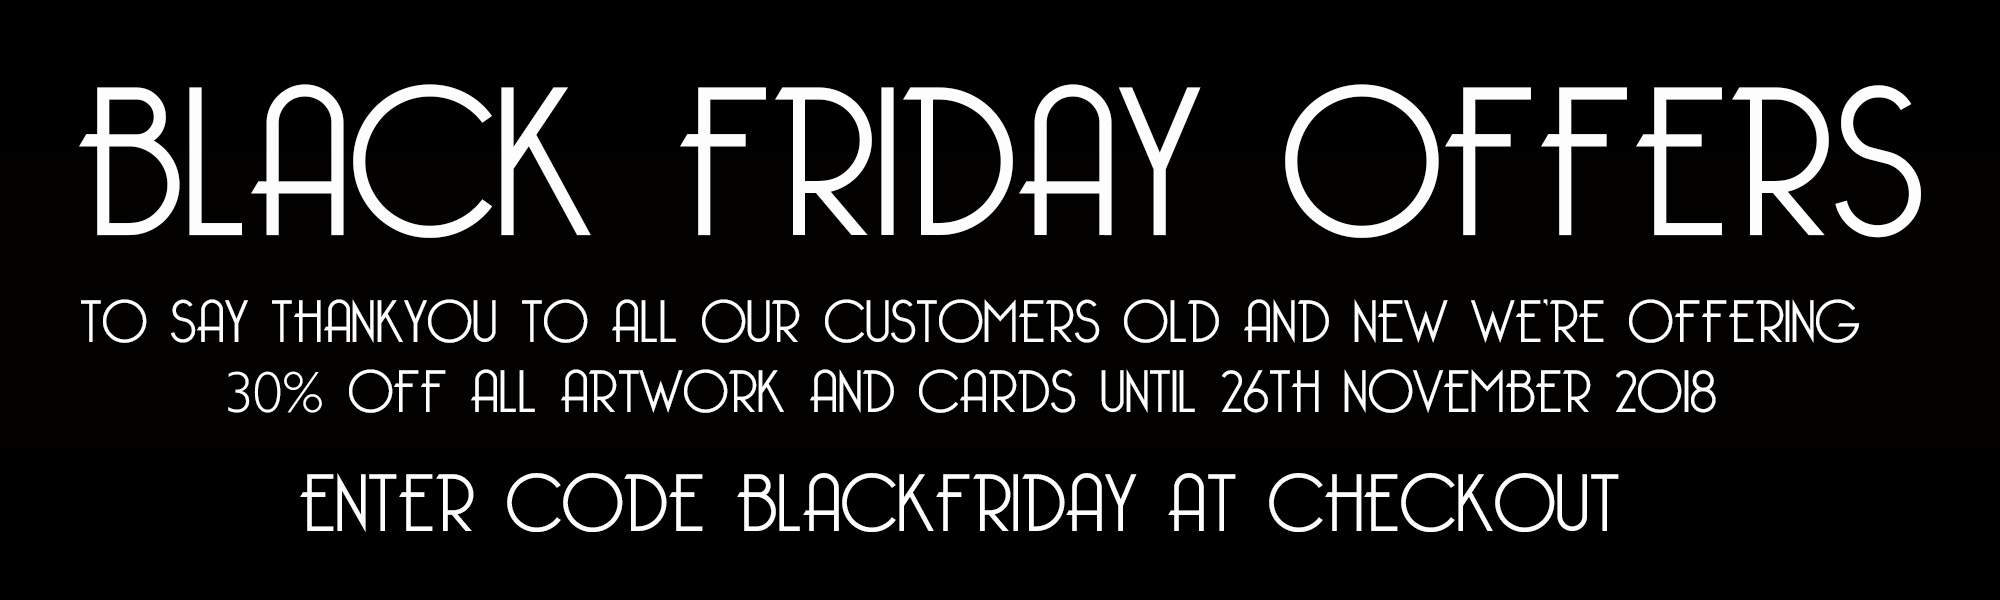 BLACK FRIDAY OFFERS LOVE SOUTHSEA